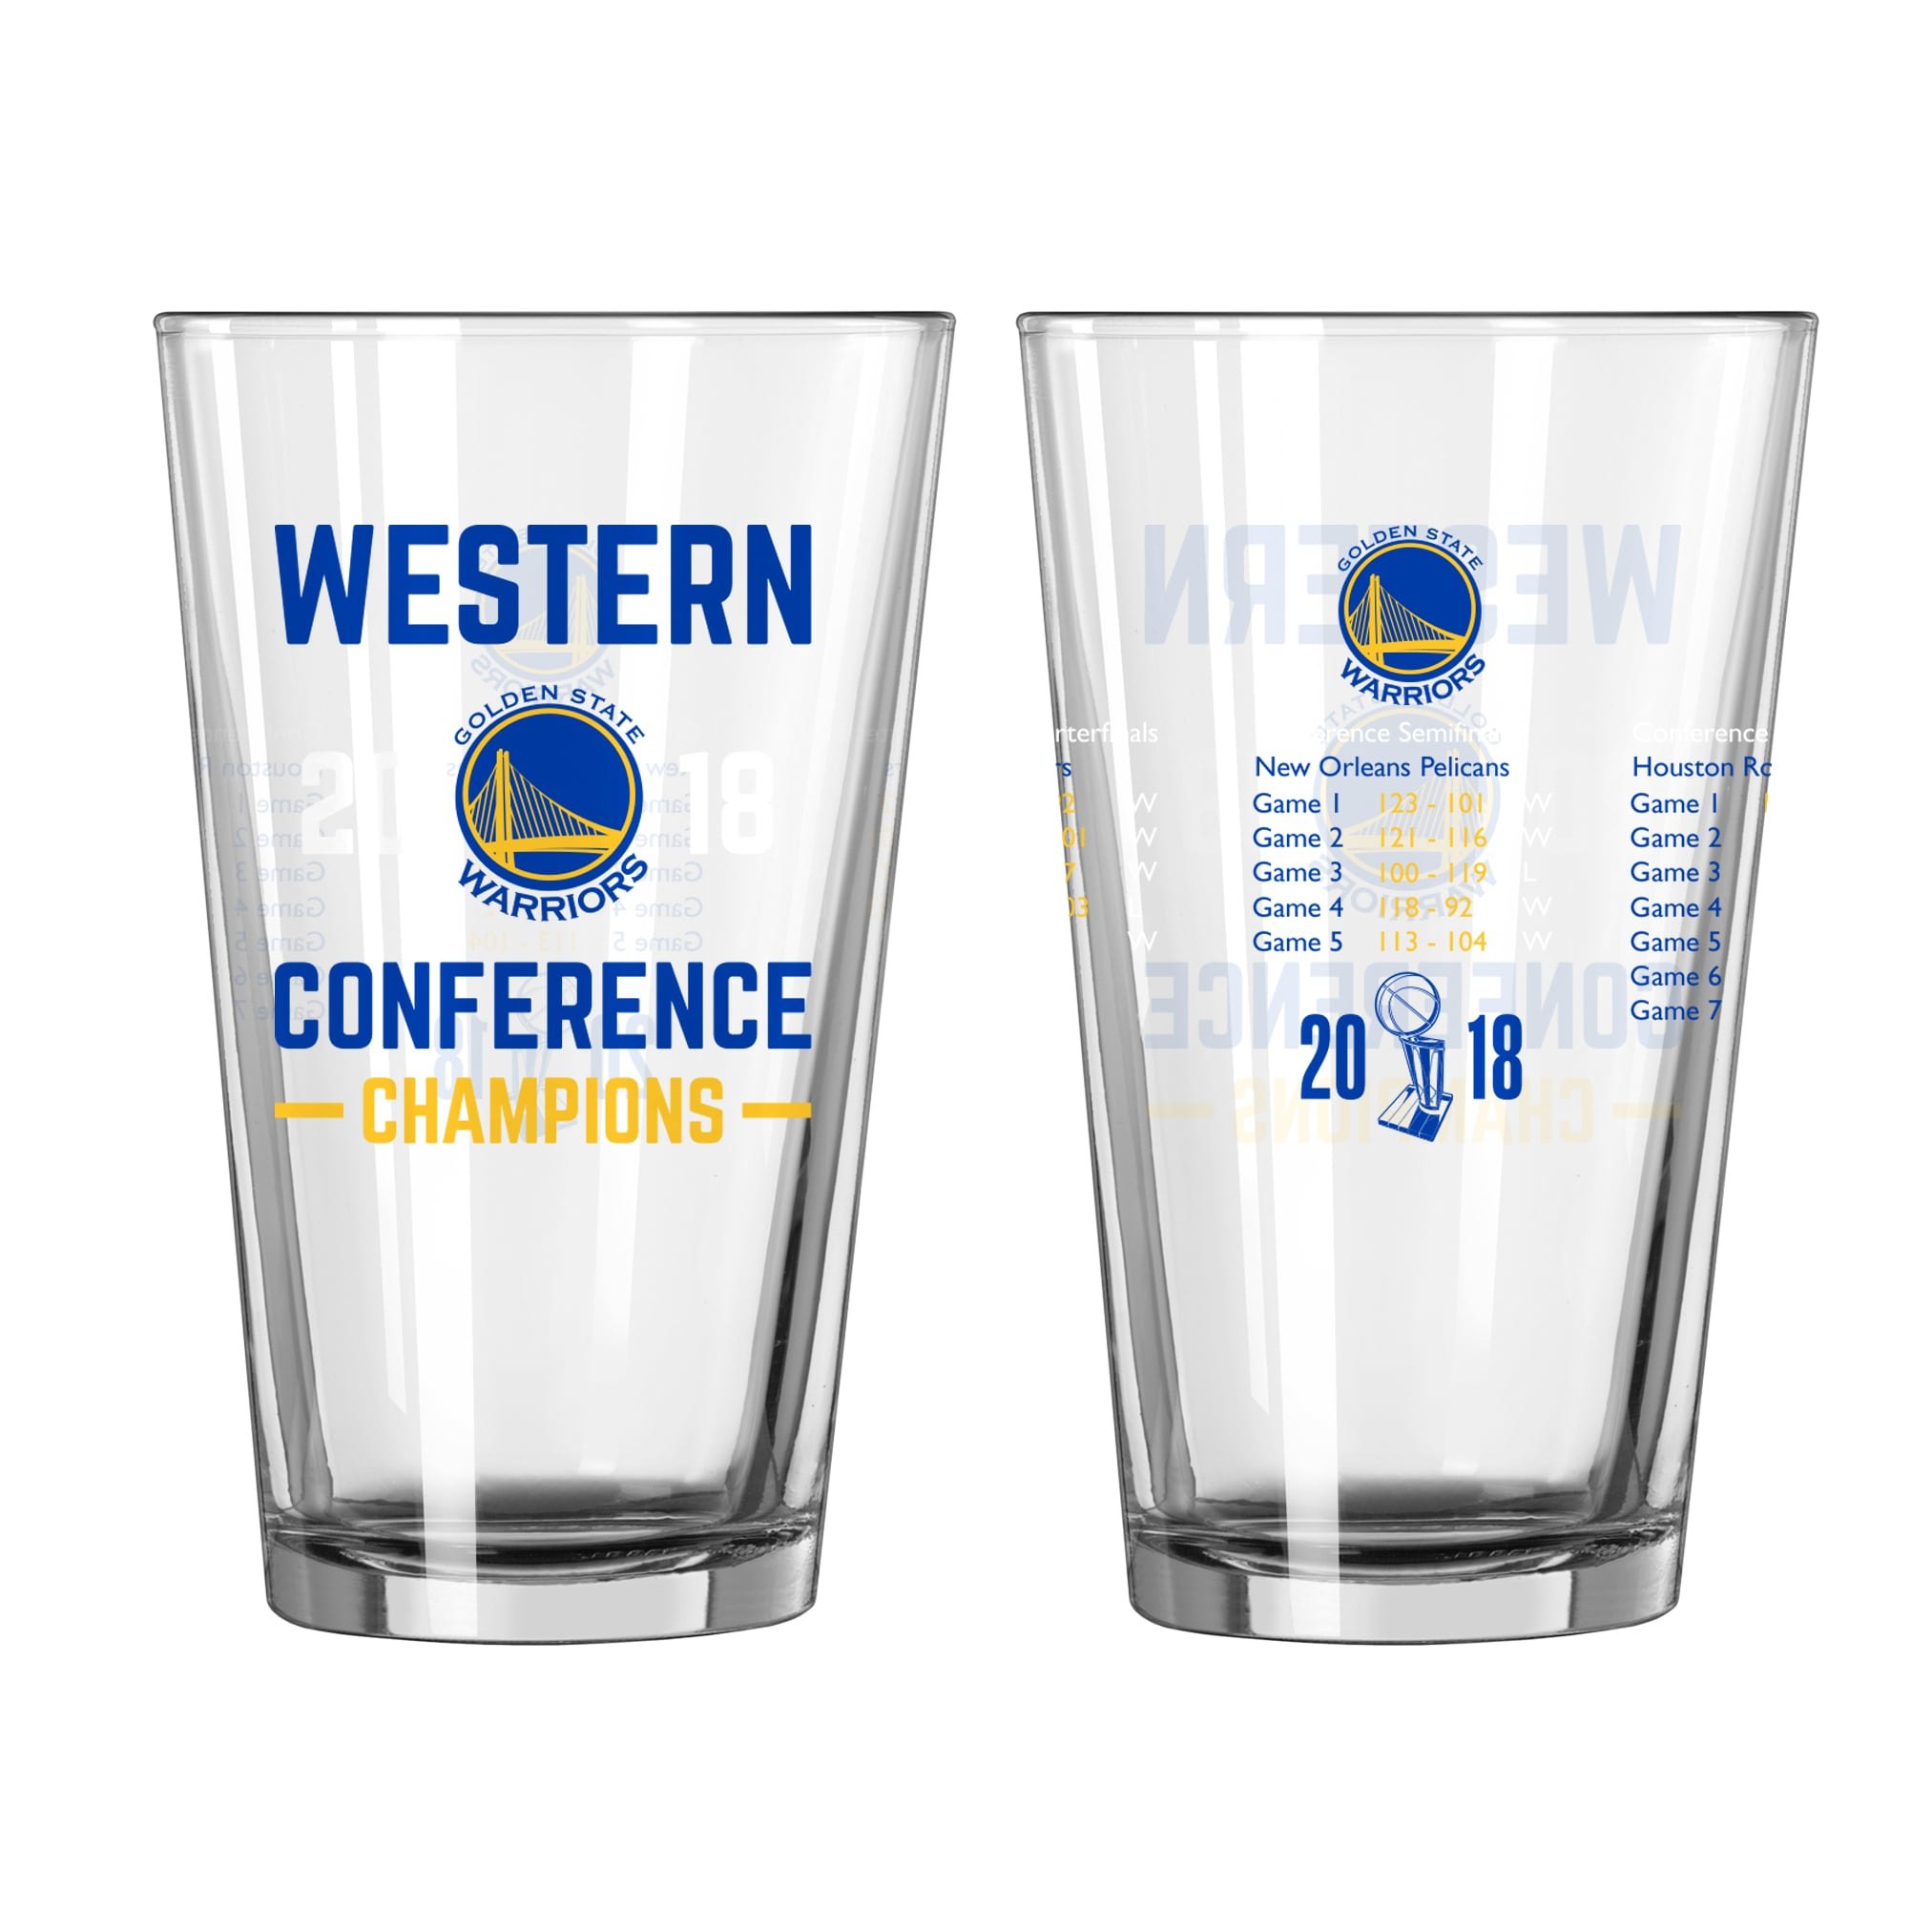 Golden State Warriors 2018 Western Conference Champions 16oz. Summary Pint Glass